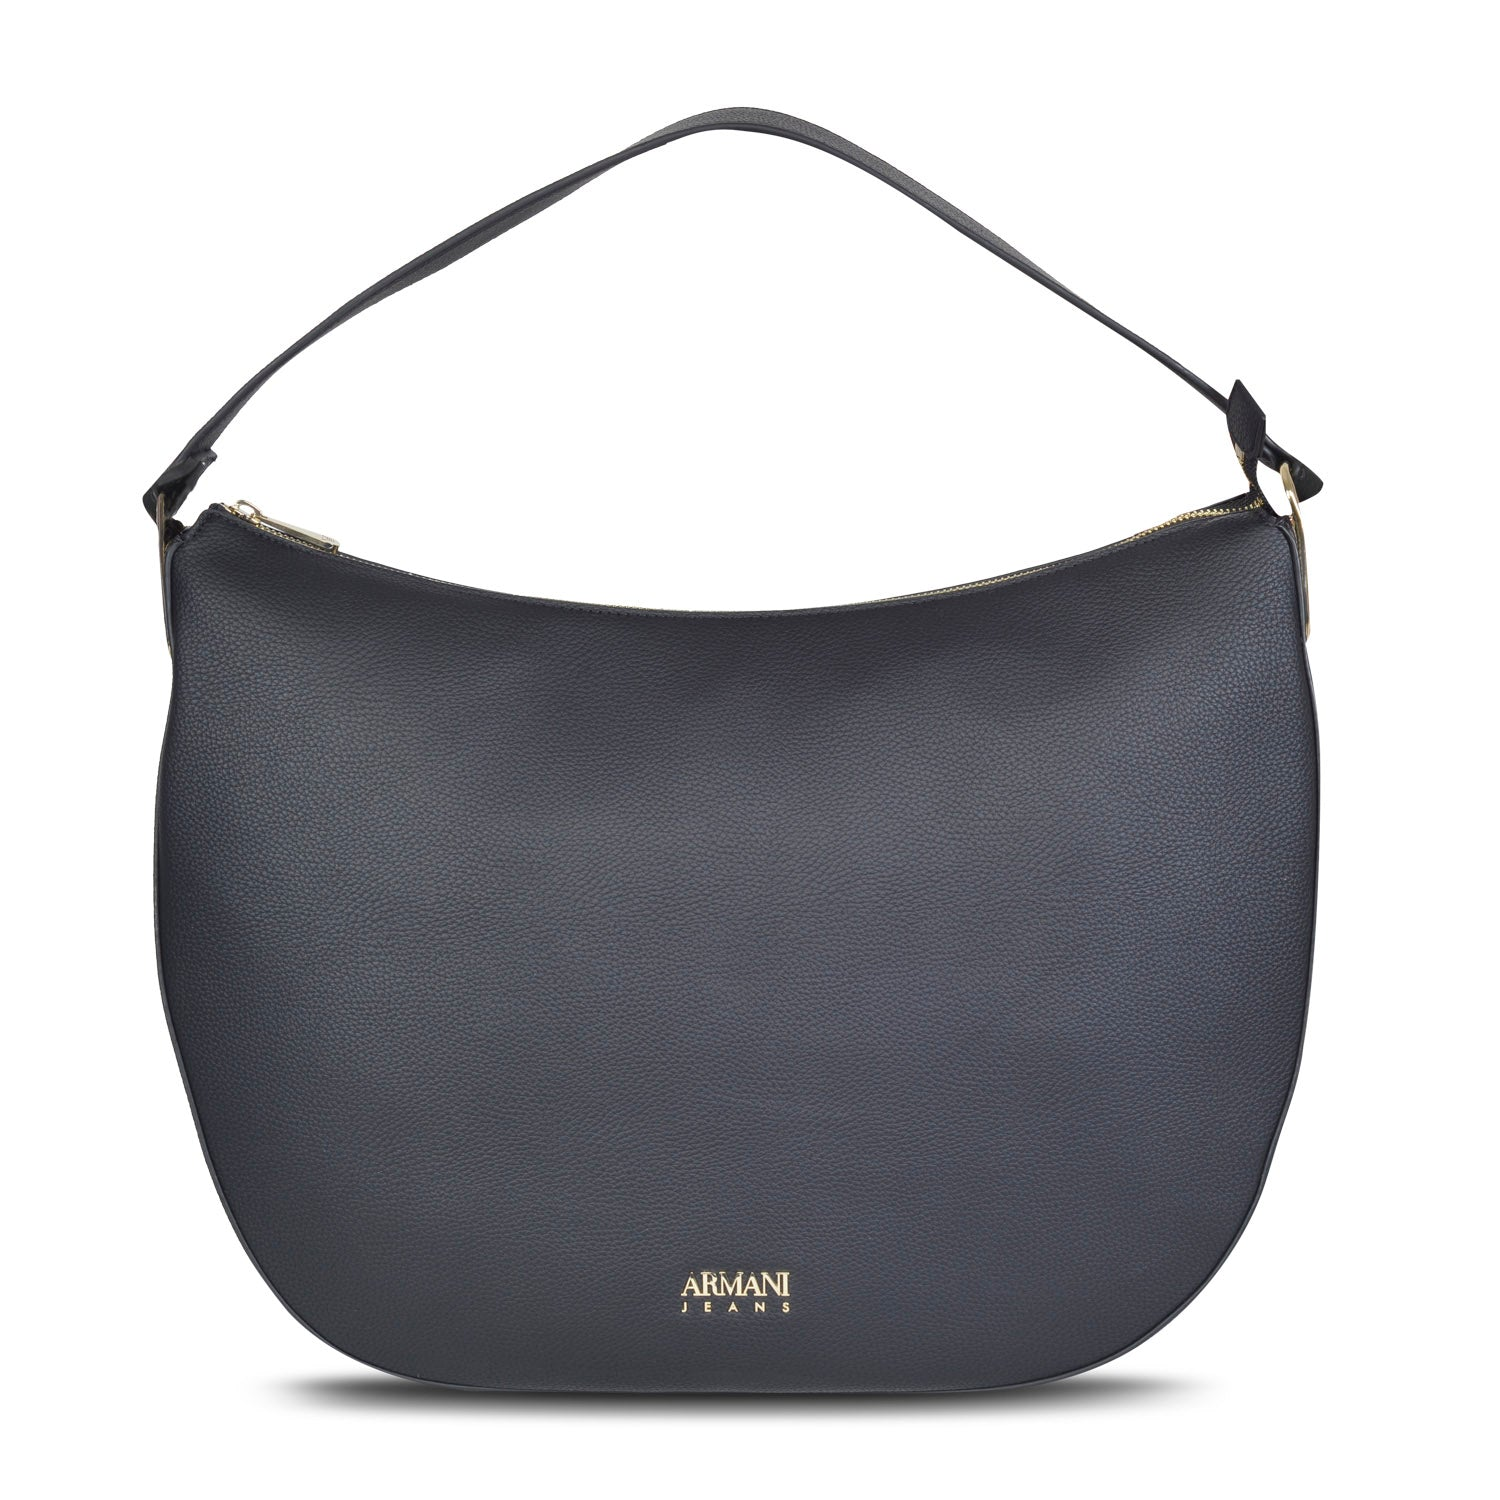 ARMANI DESIGNER WOMEN'S LEATHER HOBO BAG